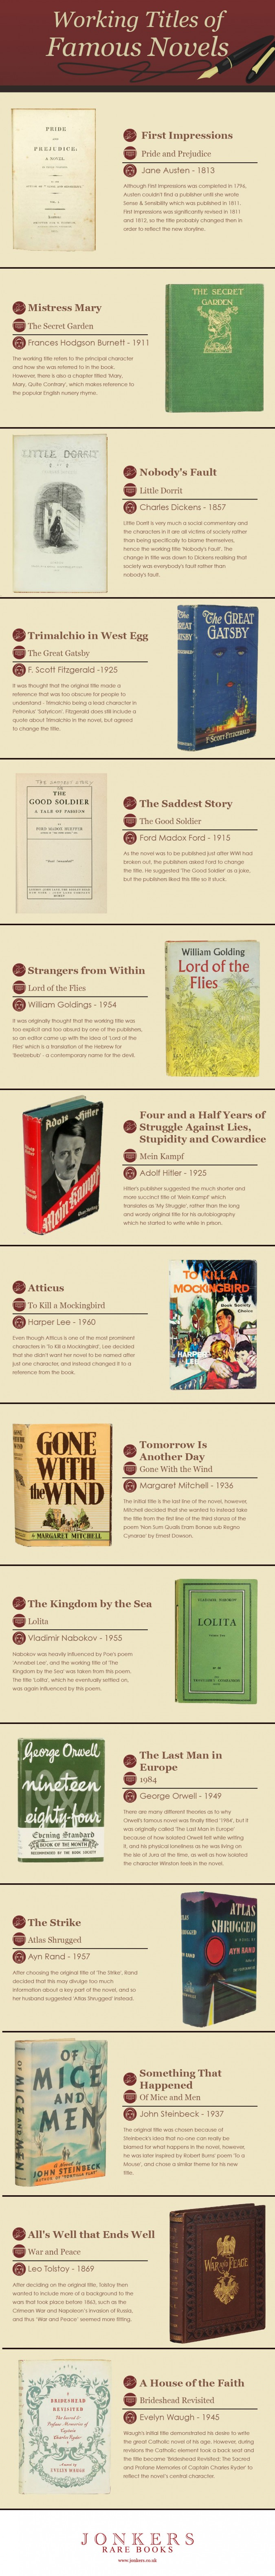 classic book titles, infographic by Jonkers